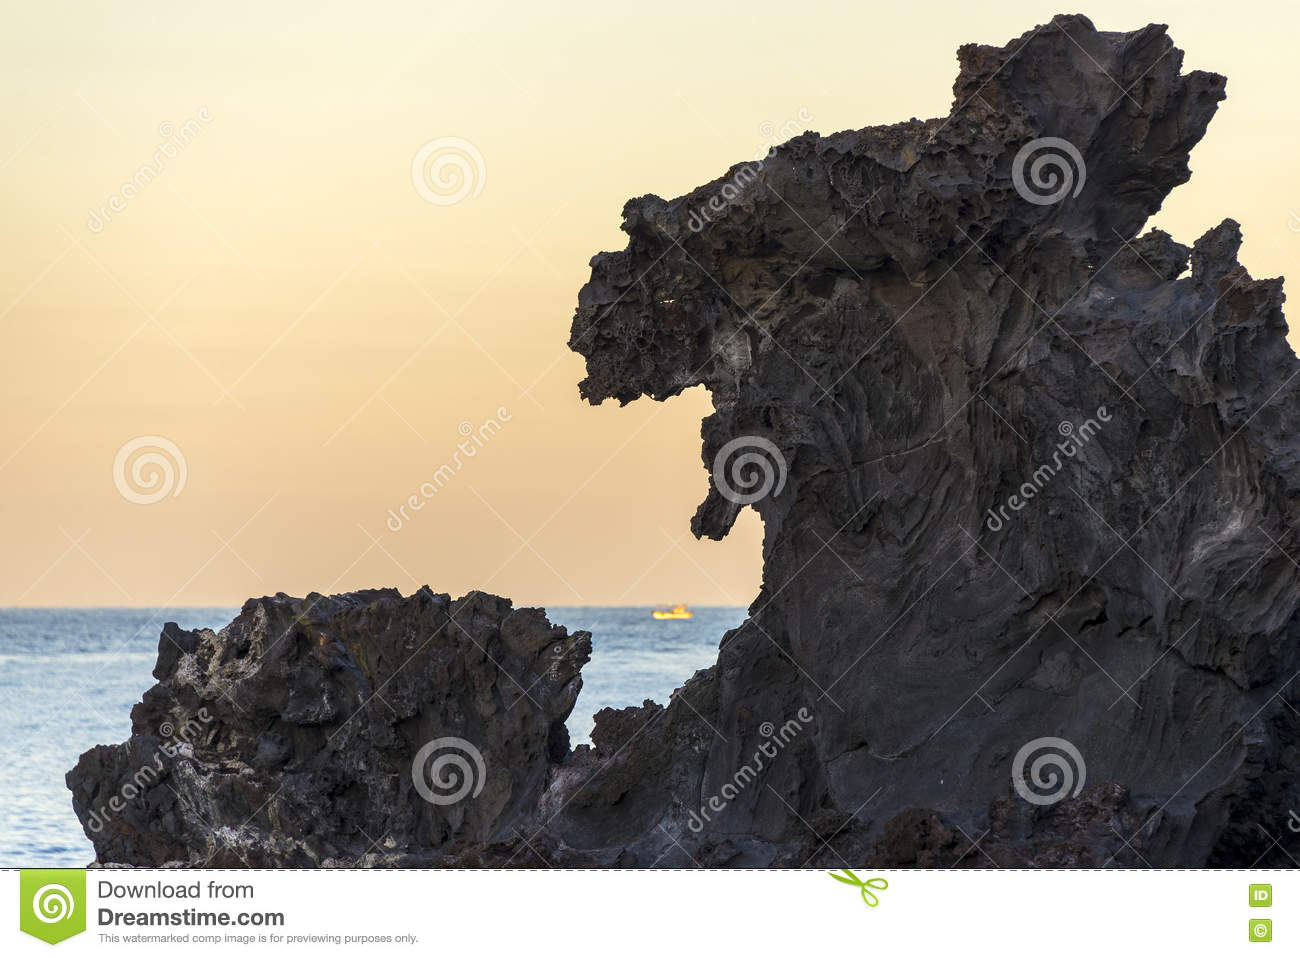 Famous tourist attraction in Jeju island of South Korea. View of Yongduam also known as dragon head rock during sunset.